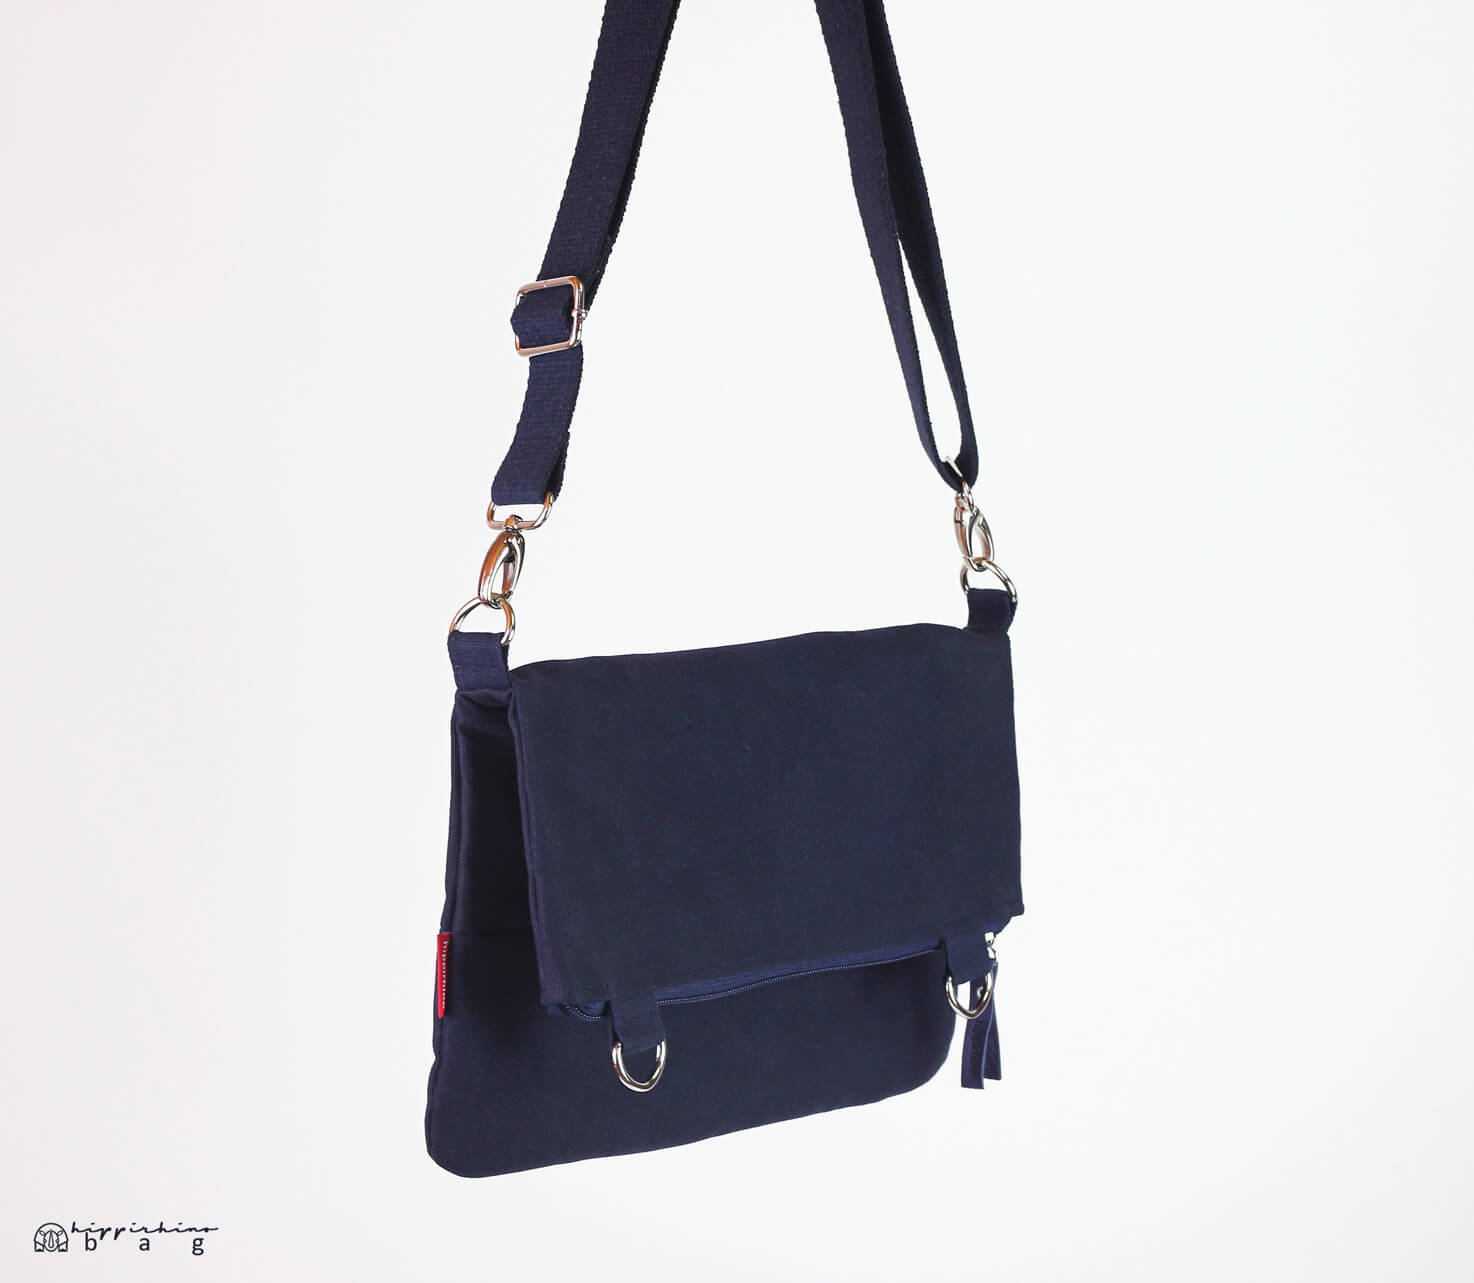 c7232933a24e Small Navy Blue Waxed Crossbody Foldover Tote Bag